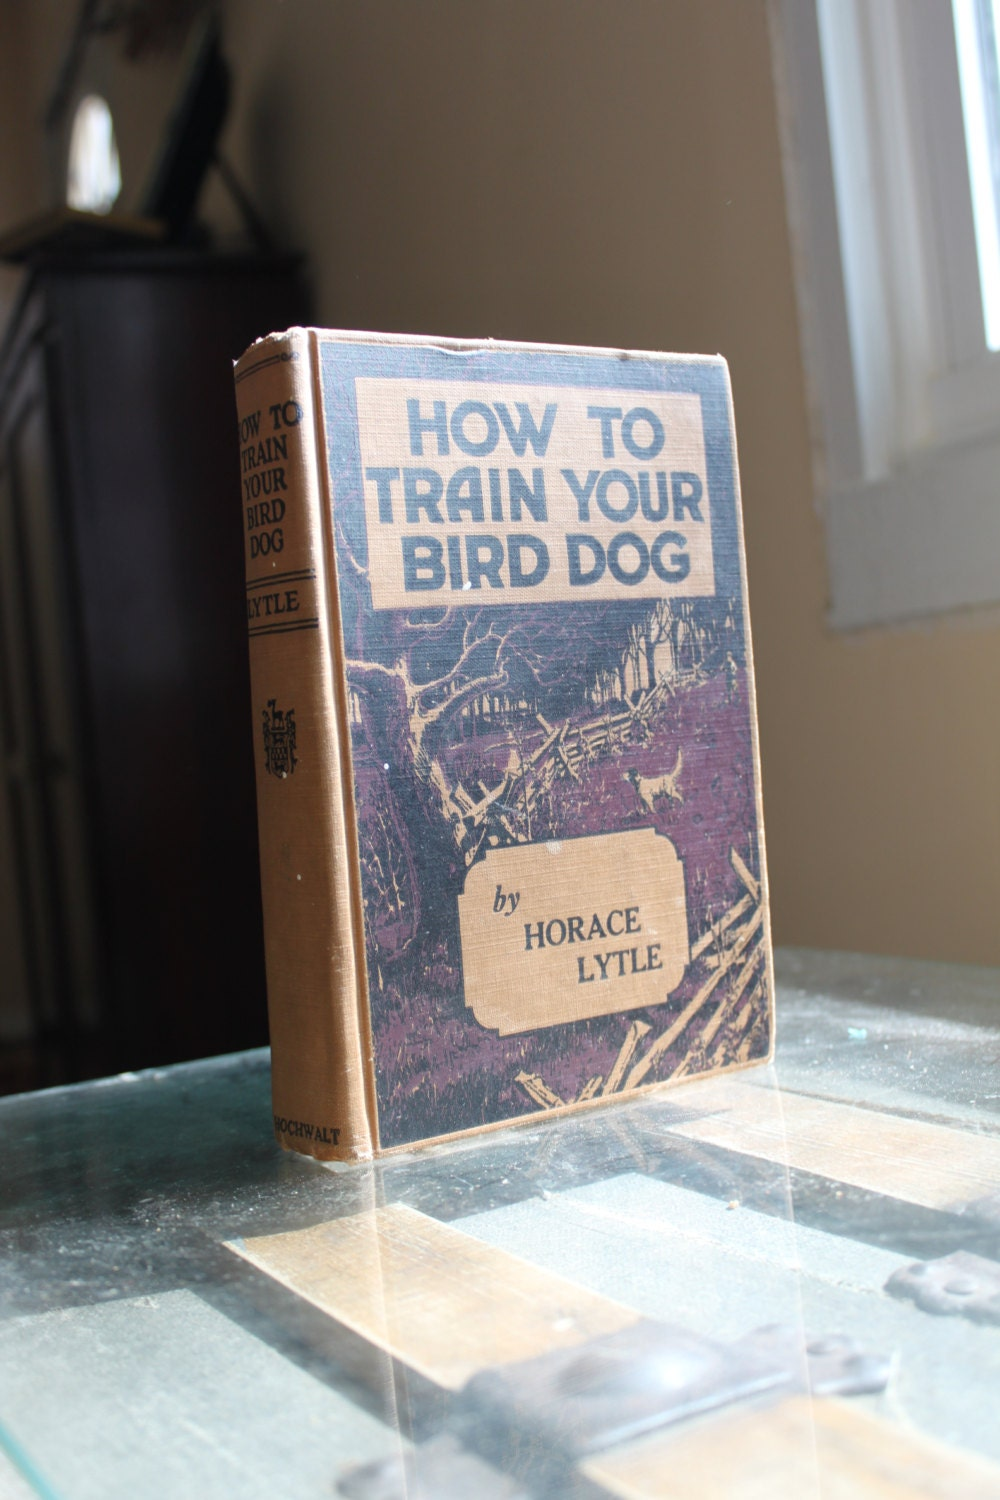 HOW TO TRAIN YOUR BIRD DOG Horace Lytle